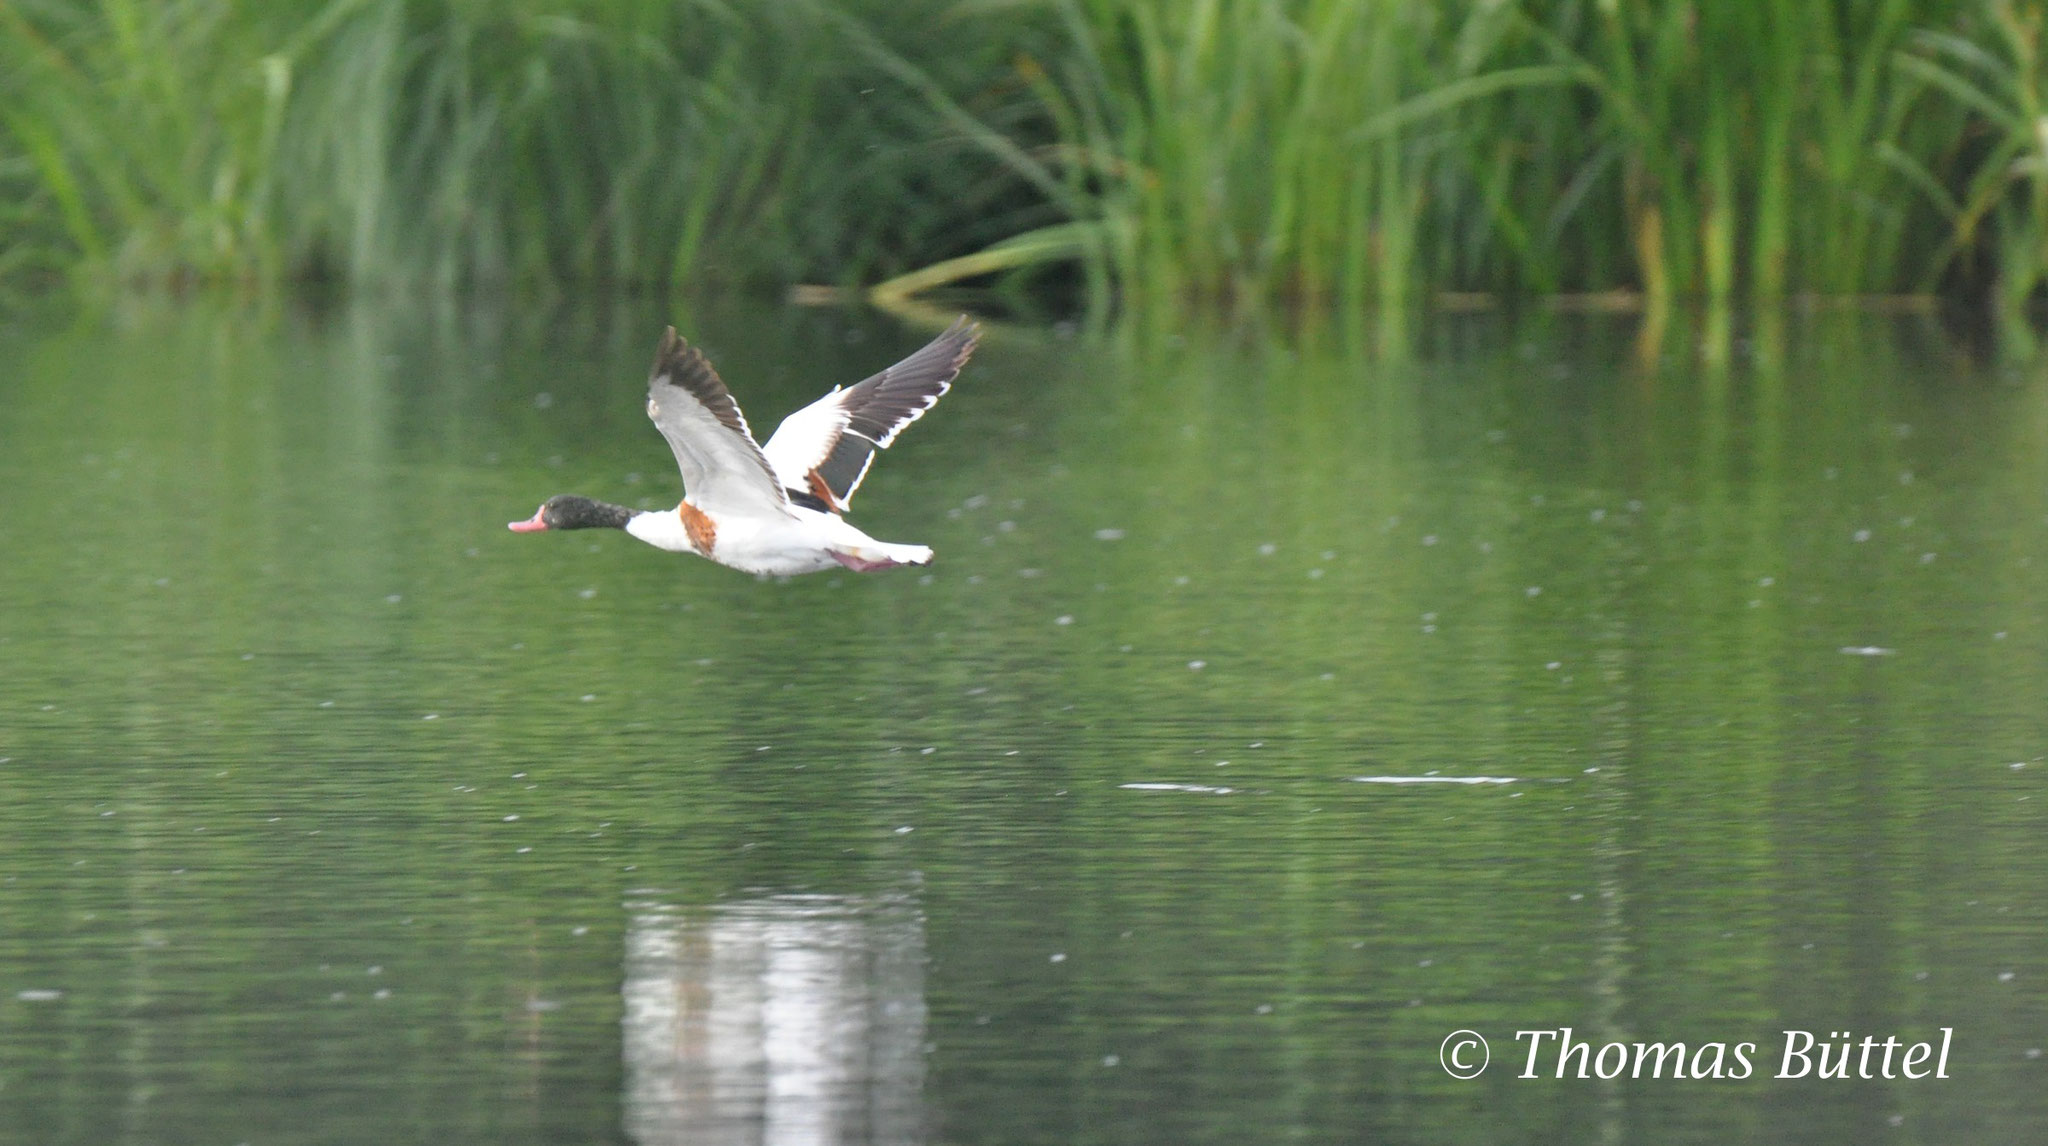 Shelduck - rarely seen during breeding season